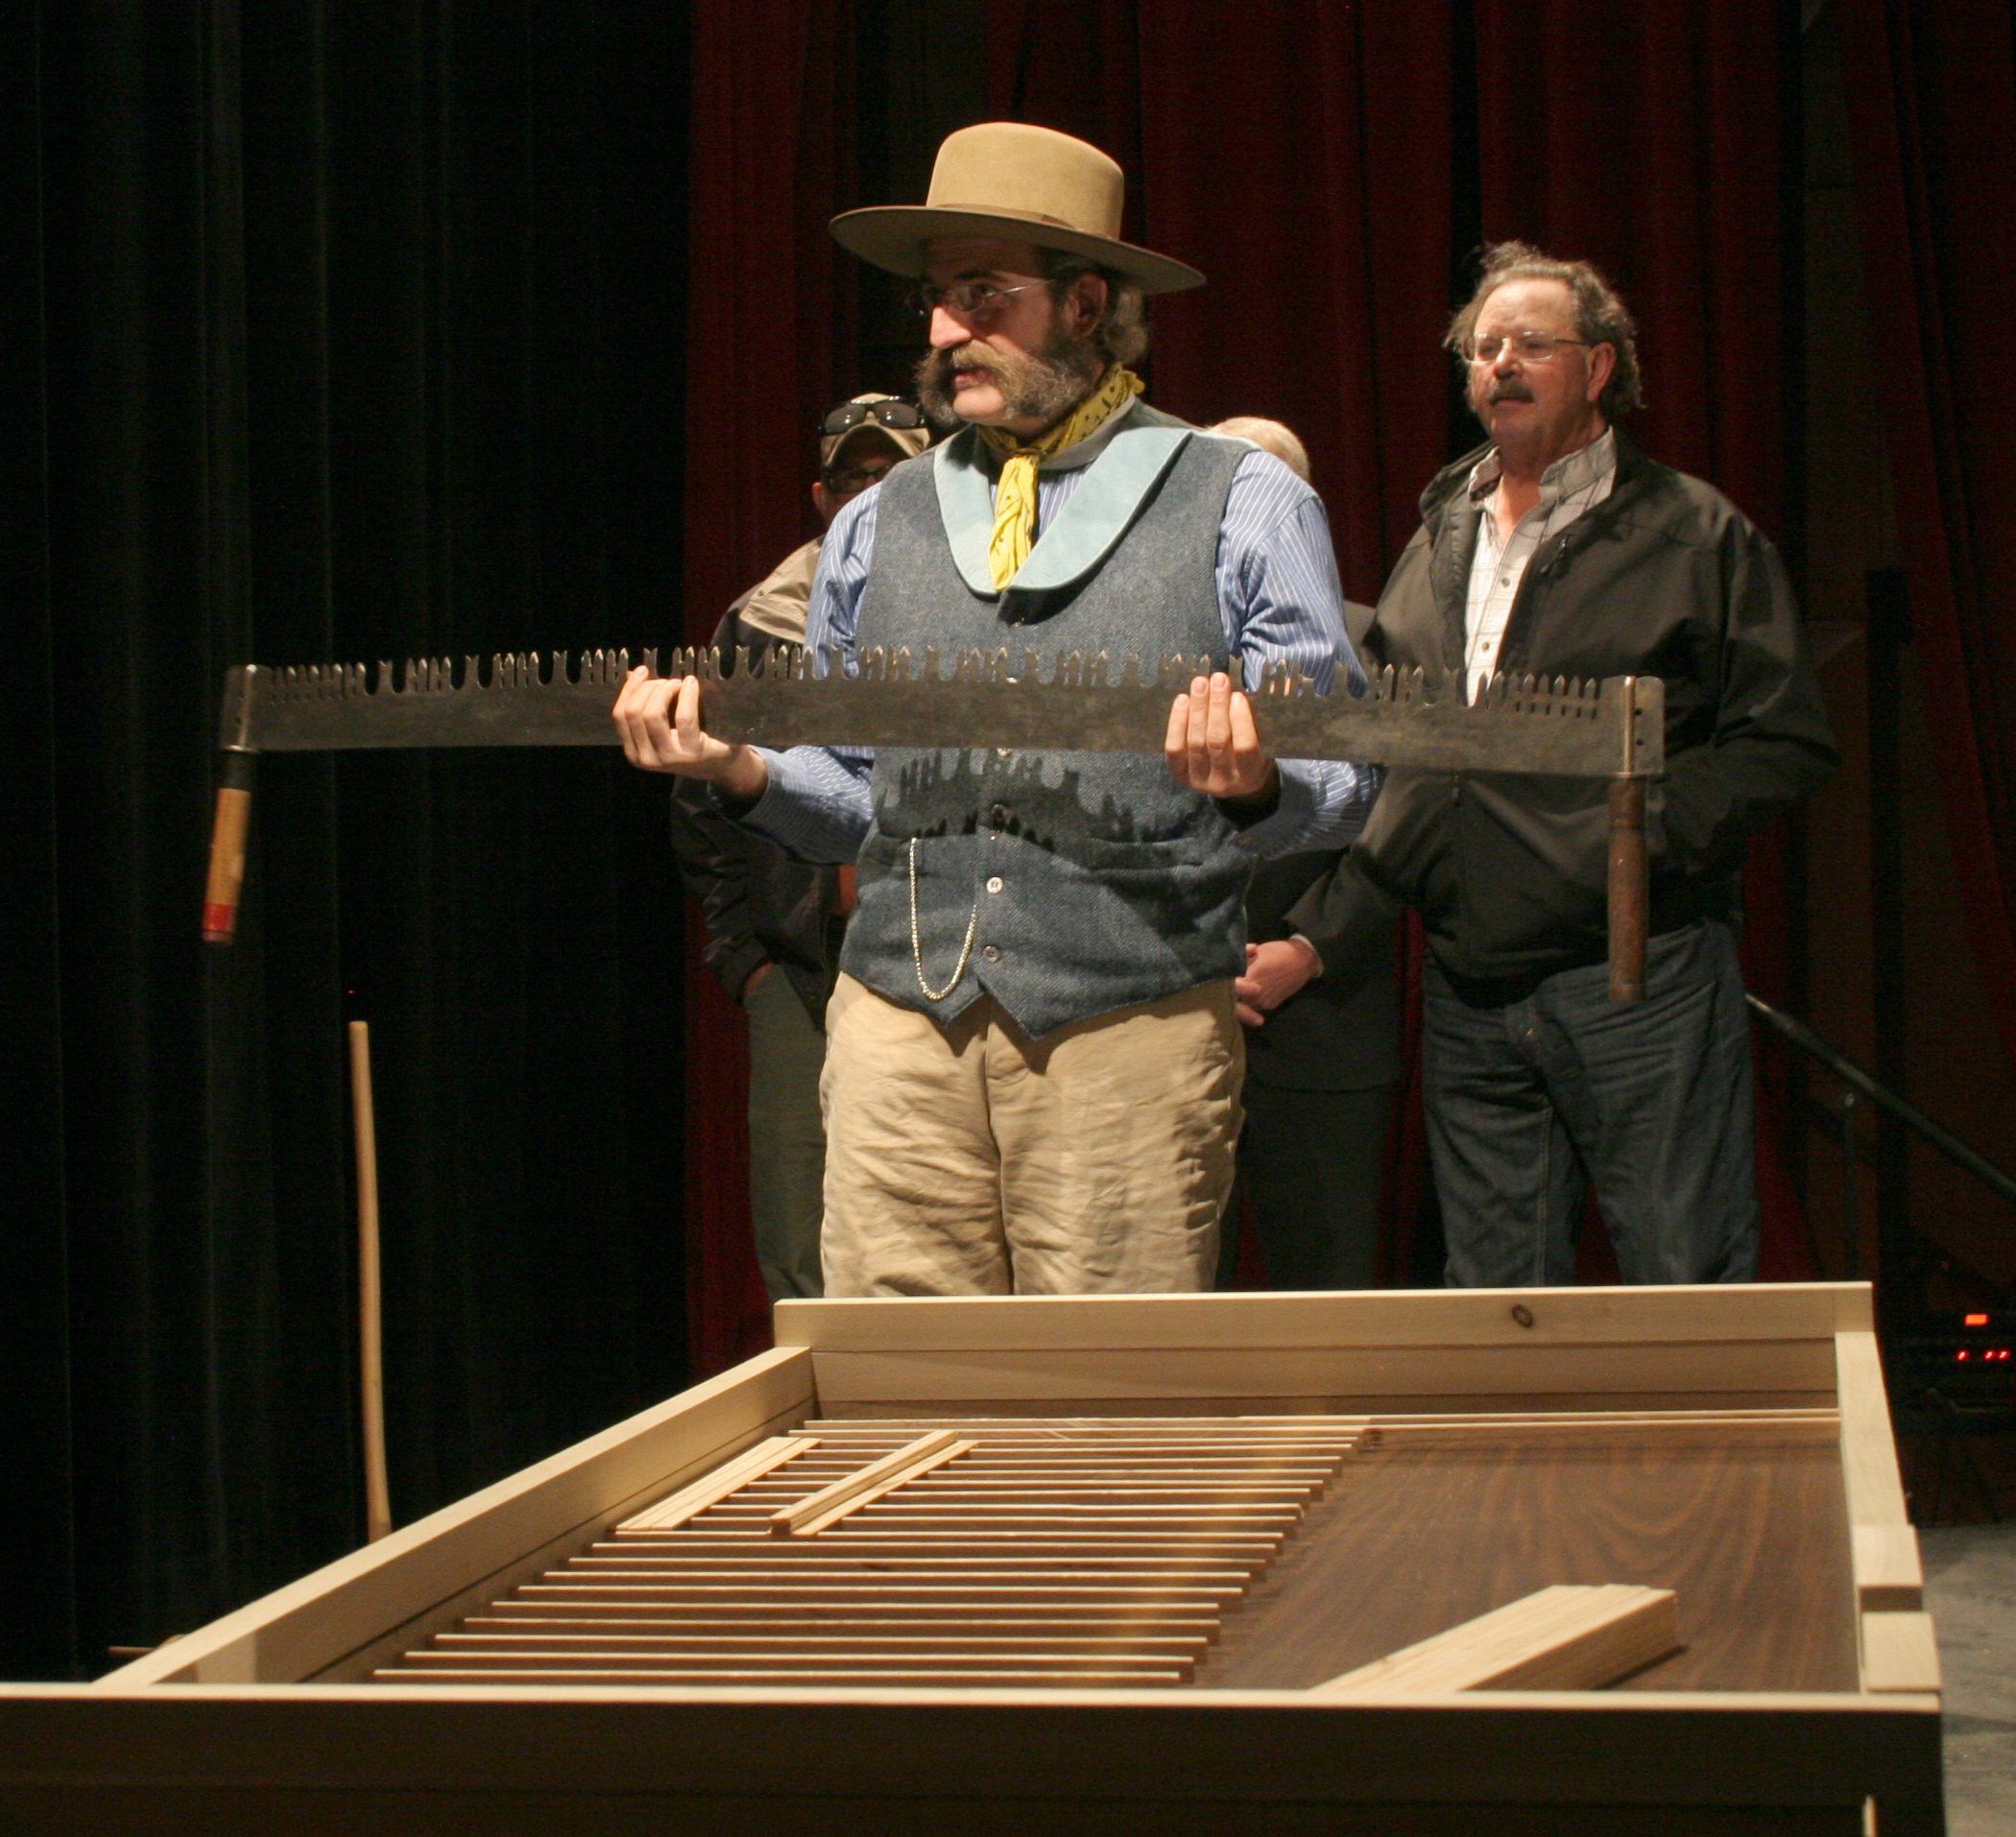 Master Builder Richard Bickel explains the type of tools that were used to build the original Elkhorn Ranch Cabin and that he and his crew will use to build the replica at the TRPL.